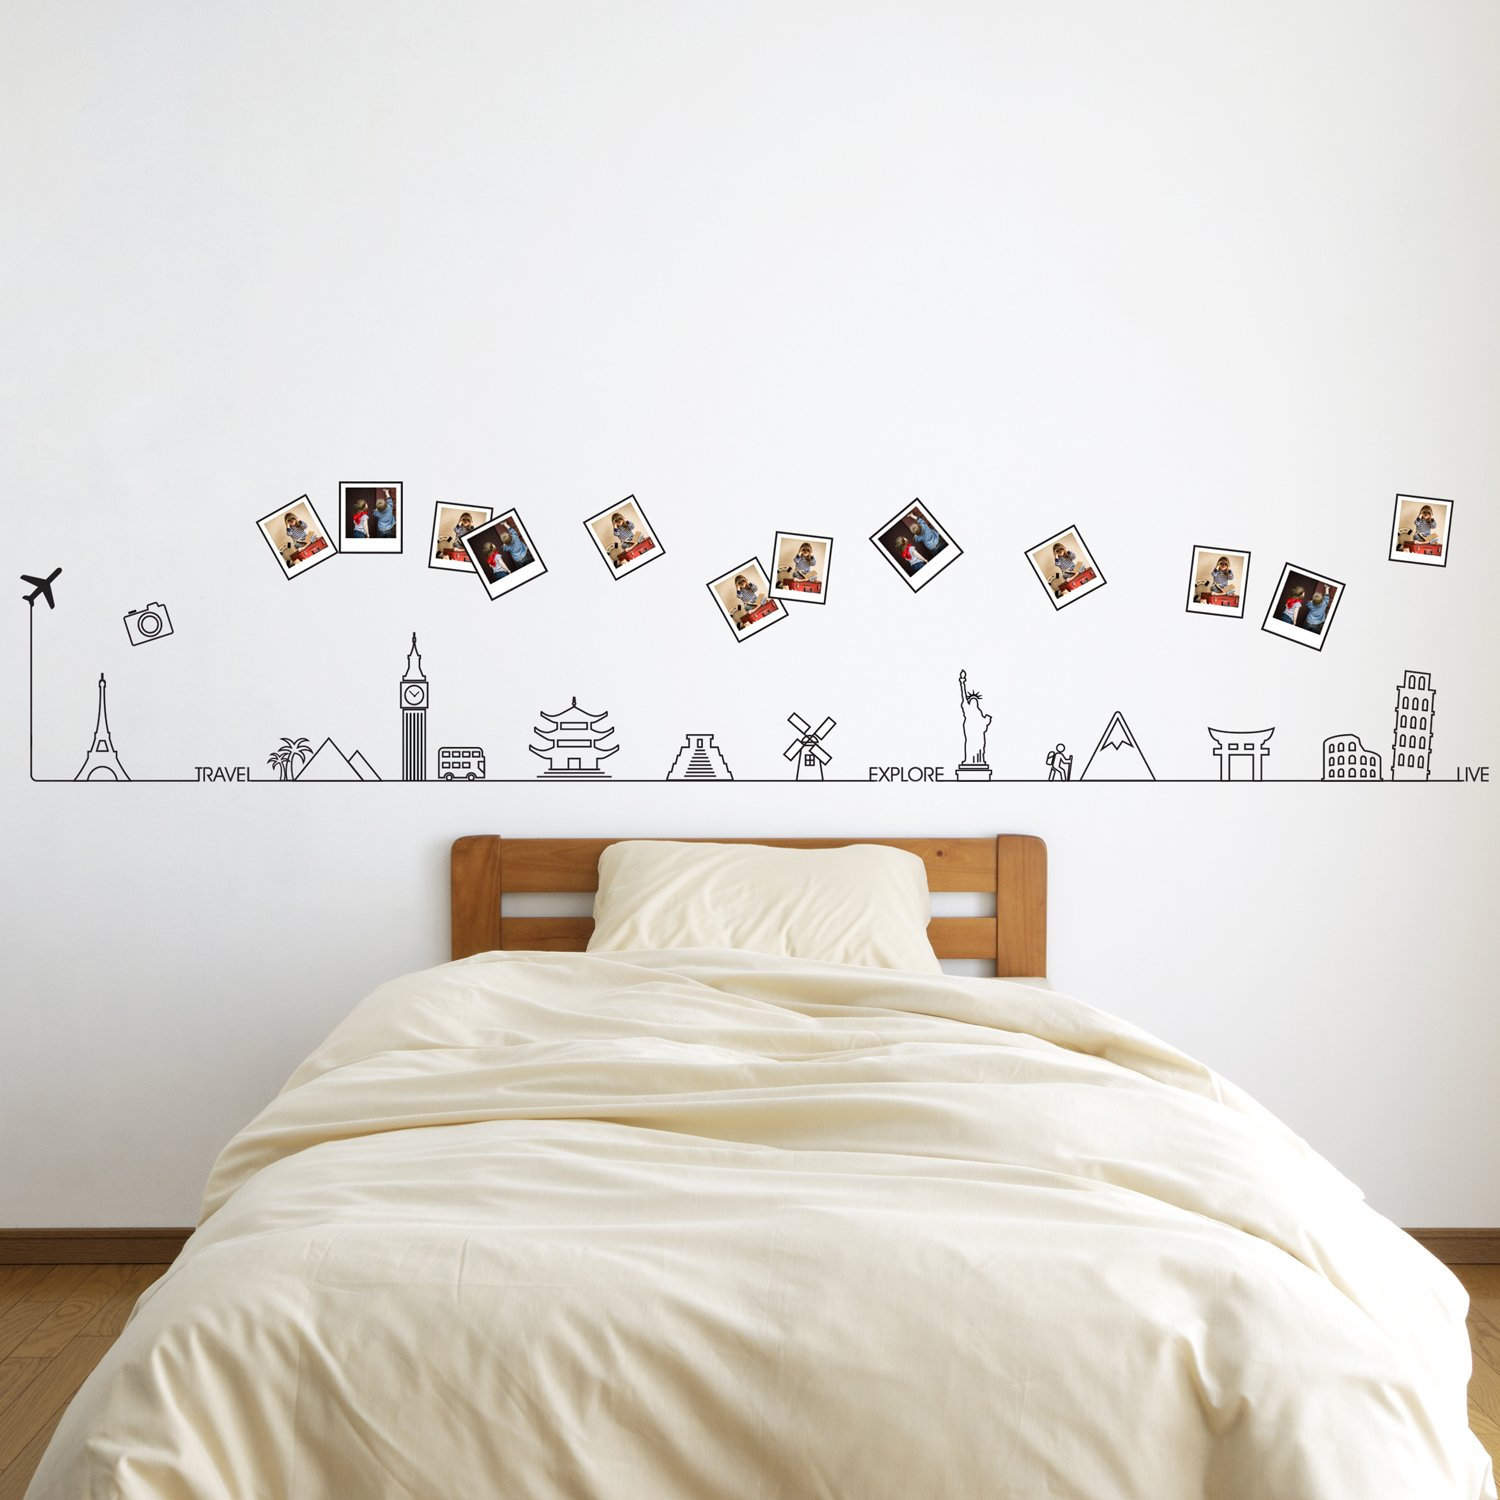 Removable Self Adhesive Wall Stickers Travel Around The Two Way Electrical Switch Wiring Diagram Hd Walls Find Wallpapers World Glow In Dark Line Mural Art Decals Vinyl Home Decoration Diy Living Bedroom